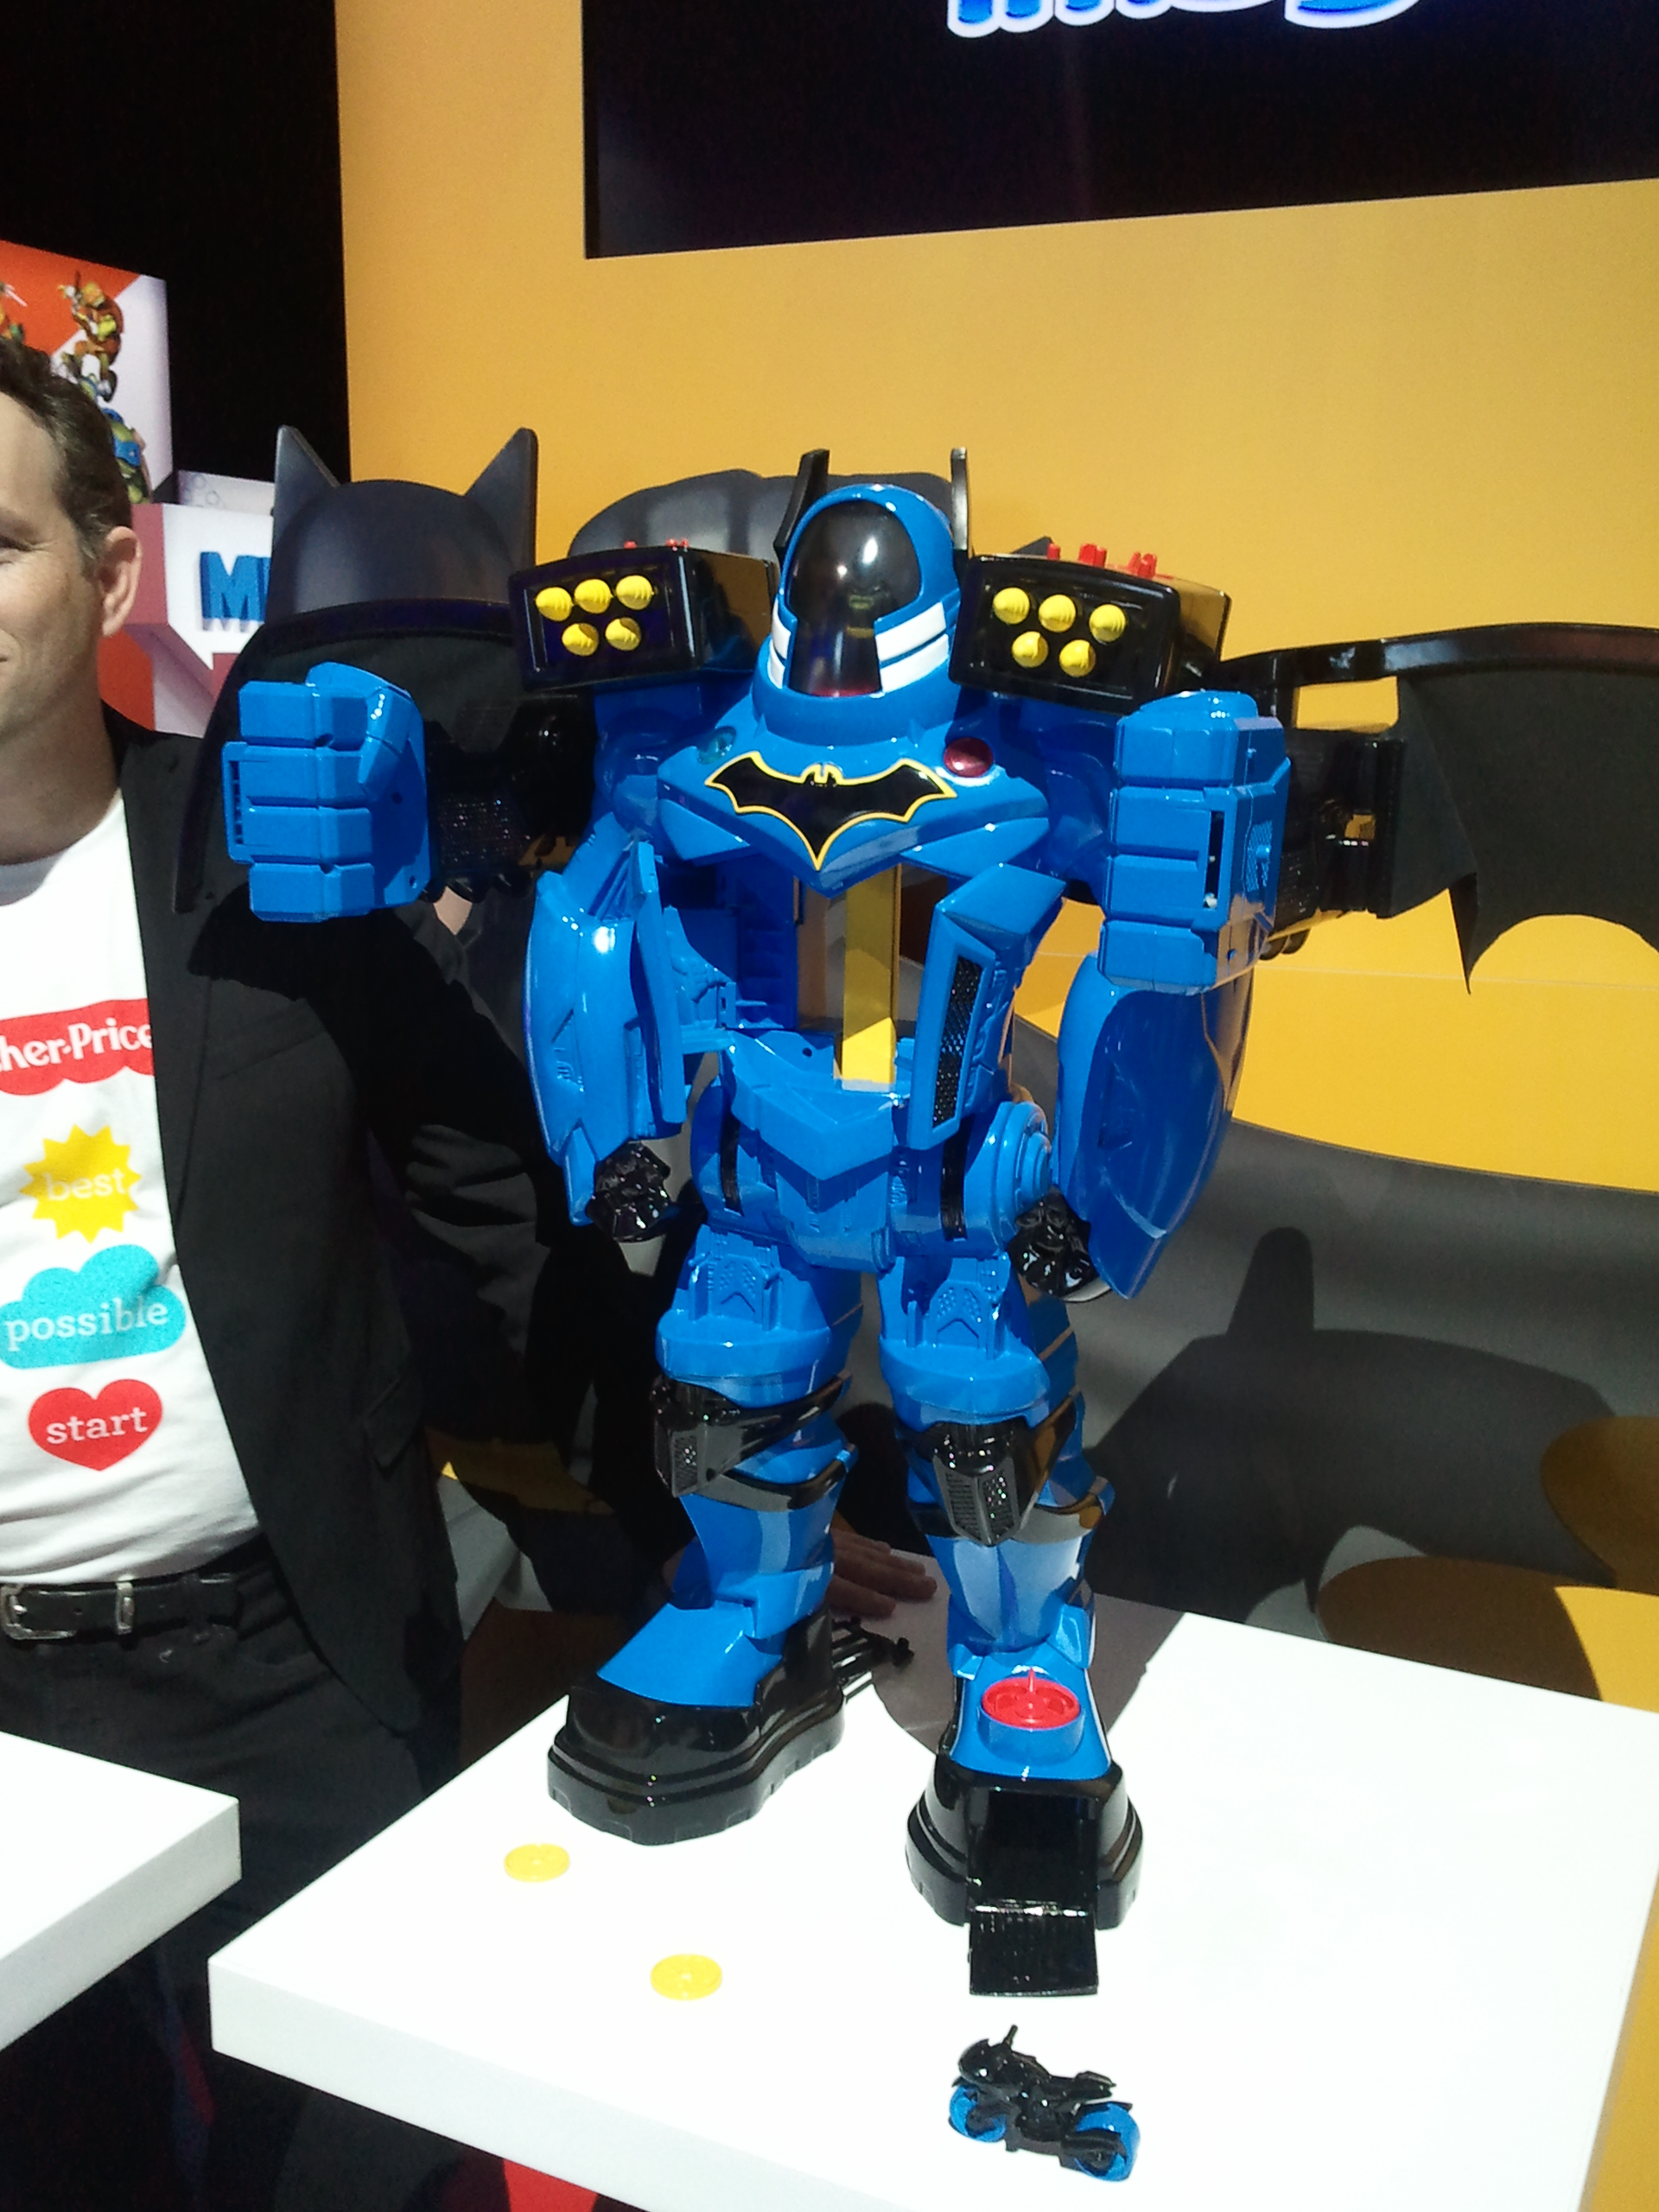 Perfect Imaginext DC Super Friends Batbot Xtreme FGF SRP Y Available Fall The ultimate Batman toy over feet tall makes kids feel